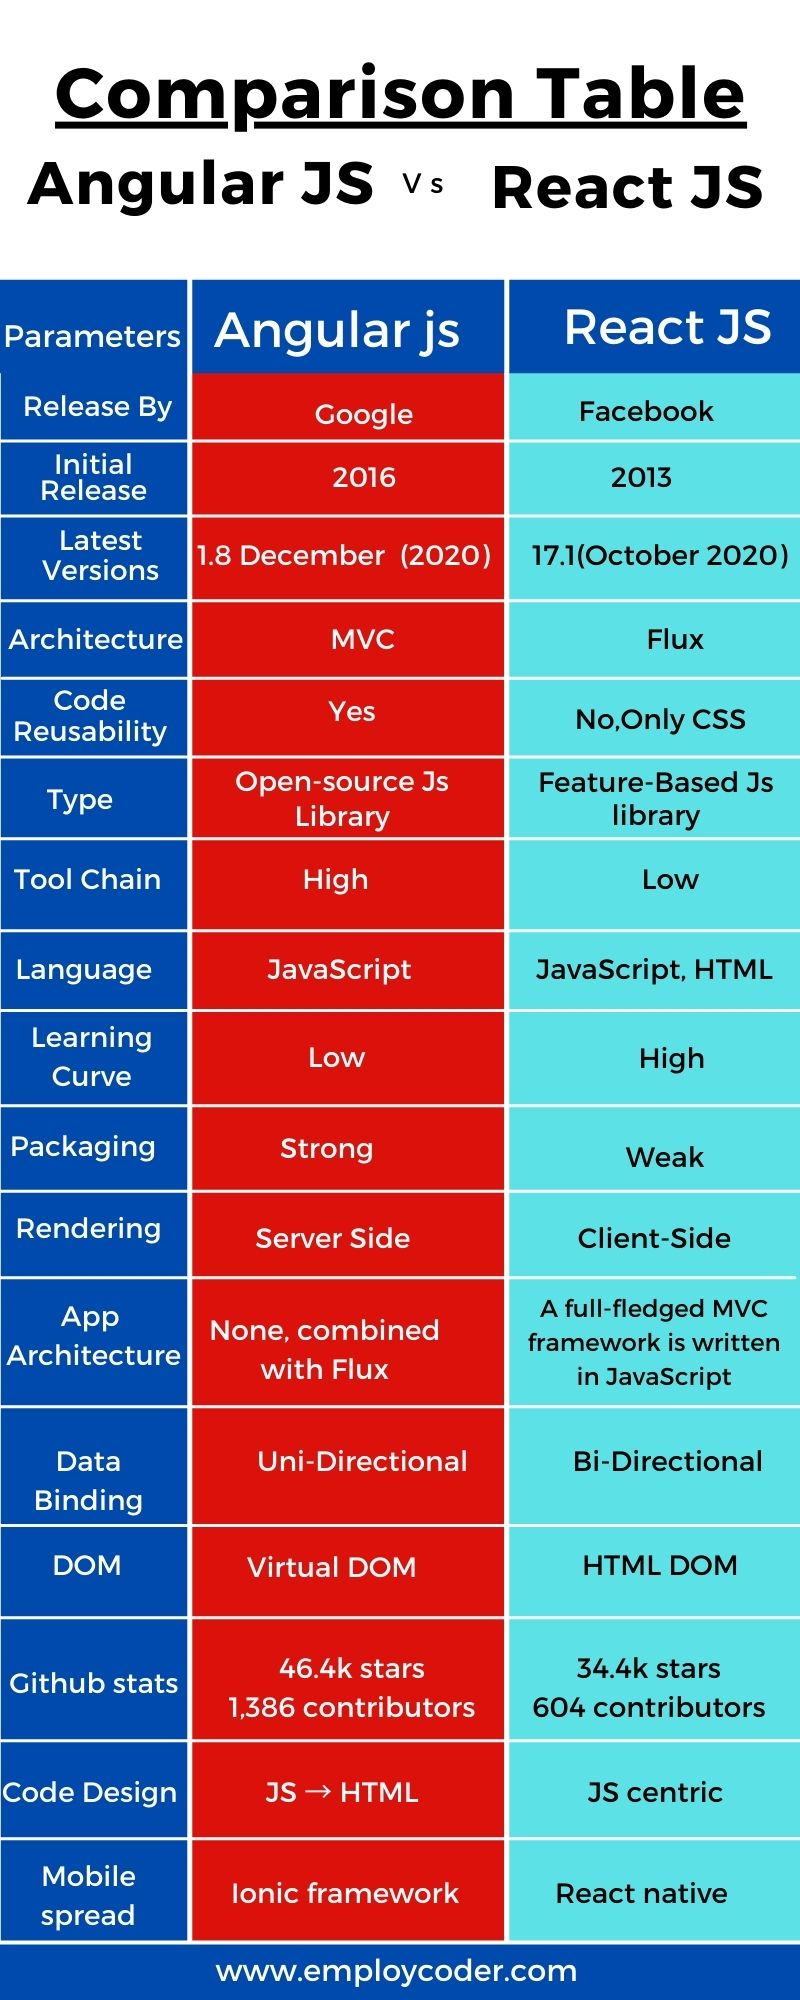 angularjs-vs-reactjs-comparison-table